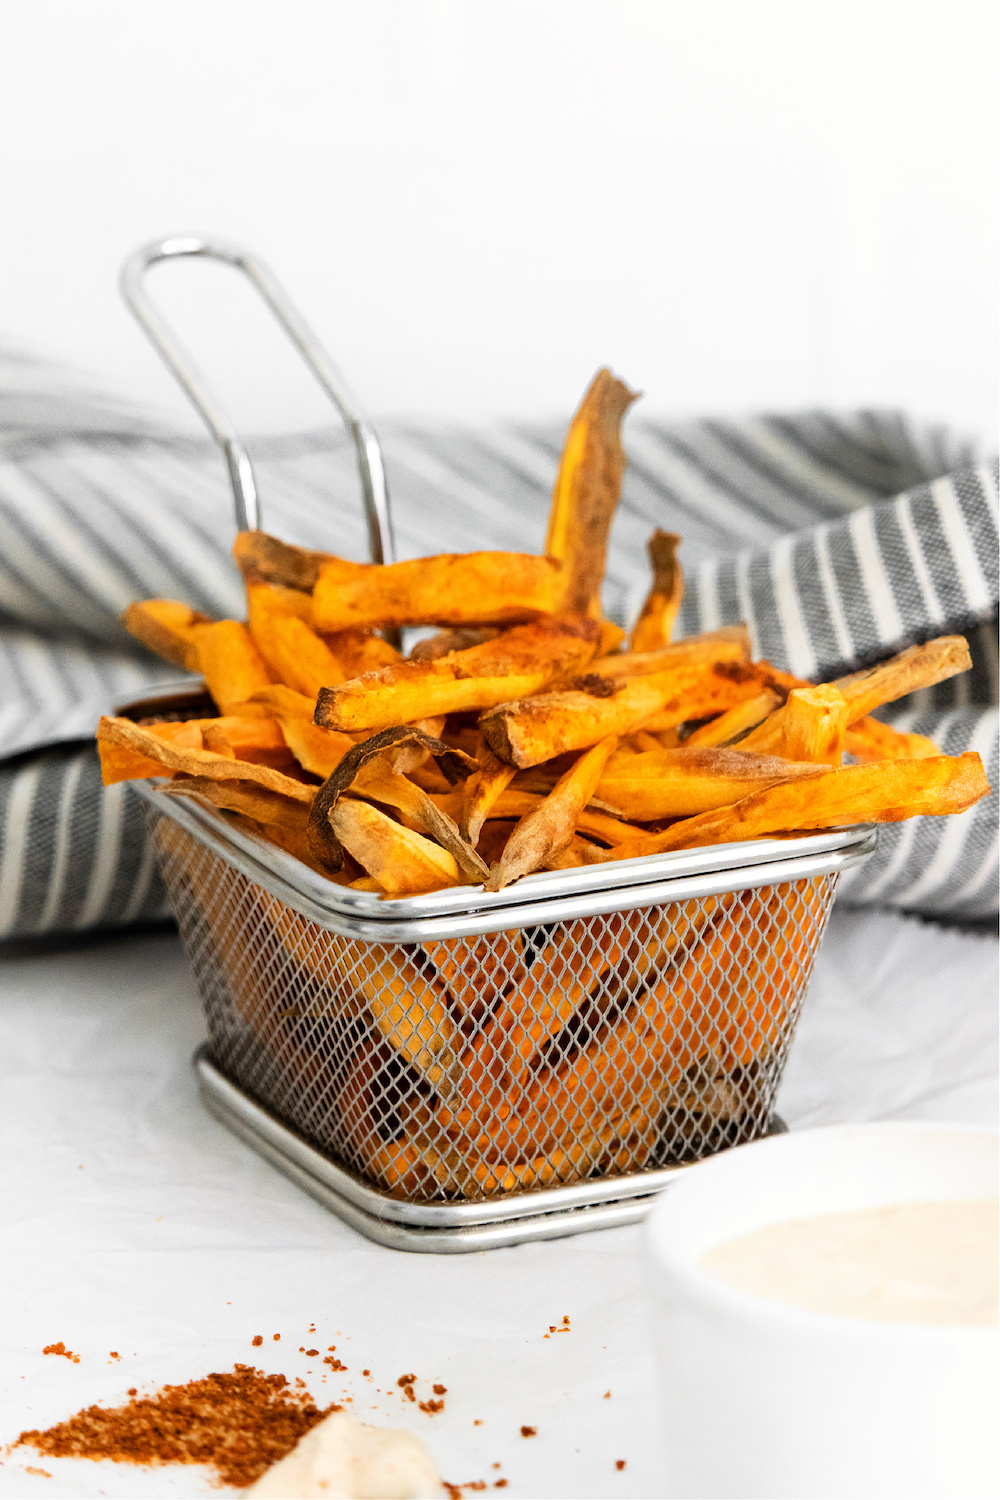 Sweet Potato French Fries in basket